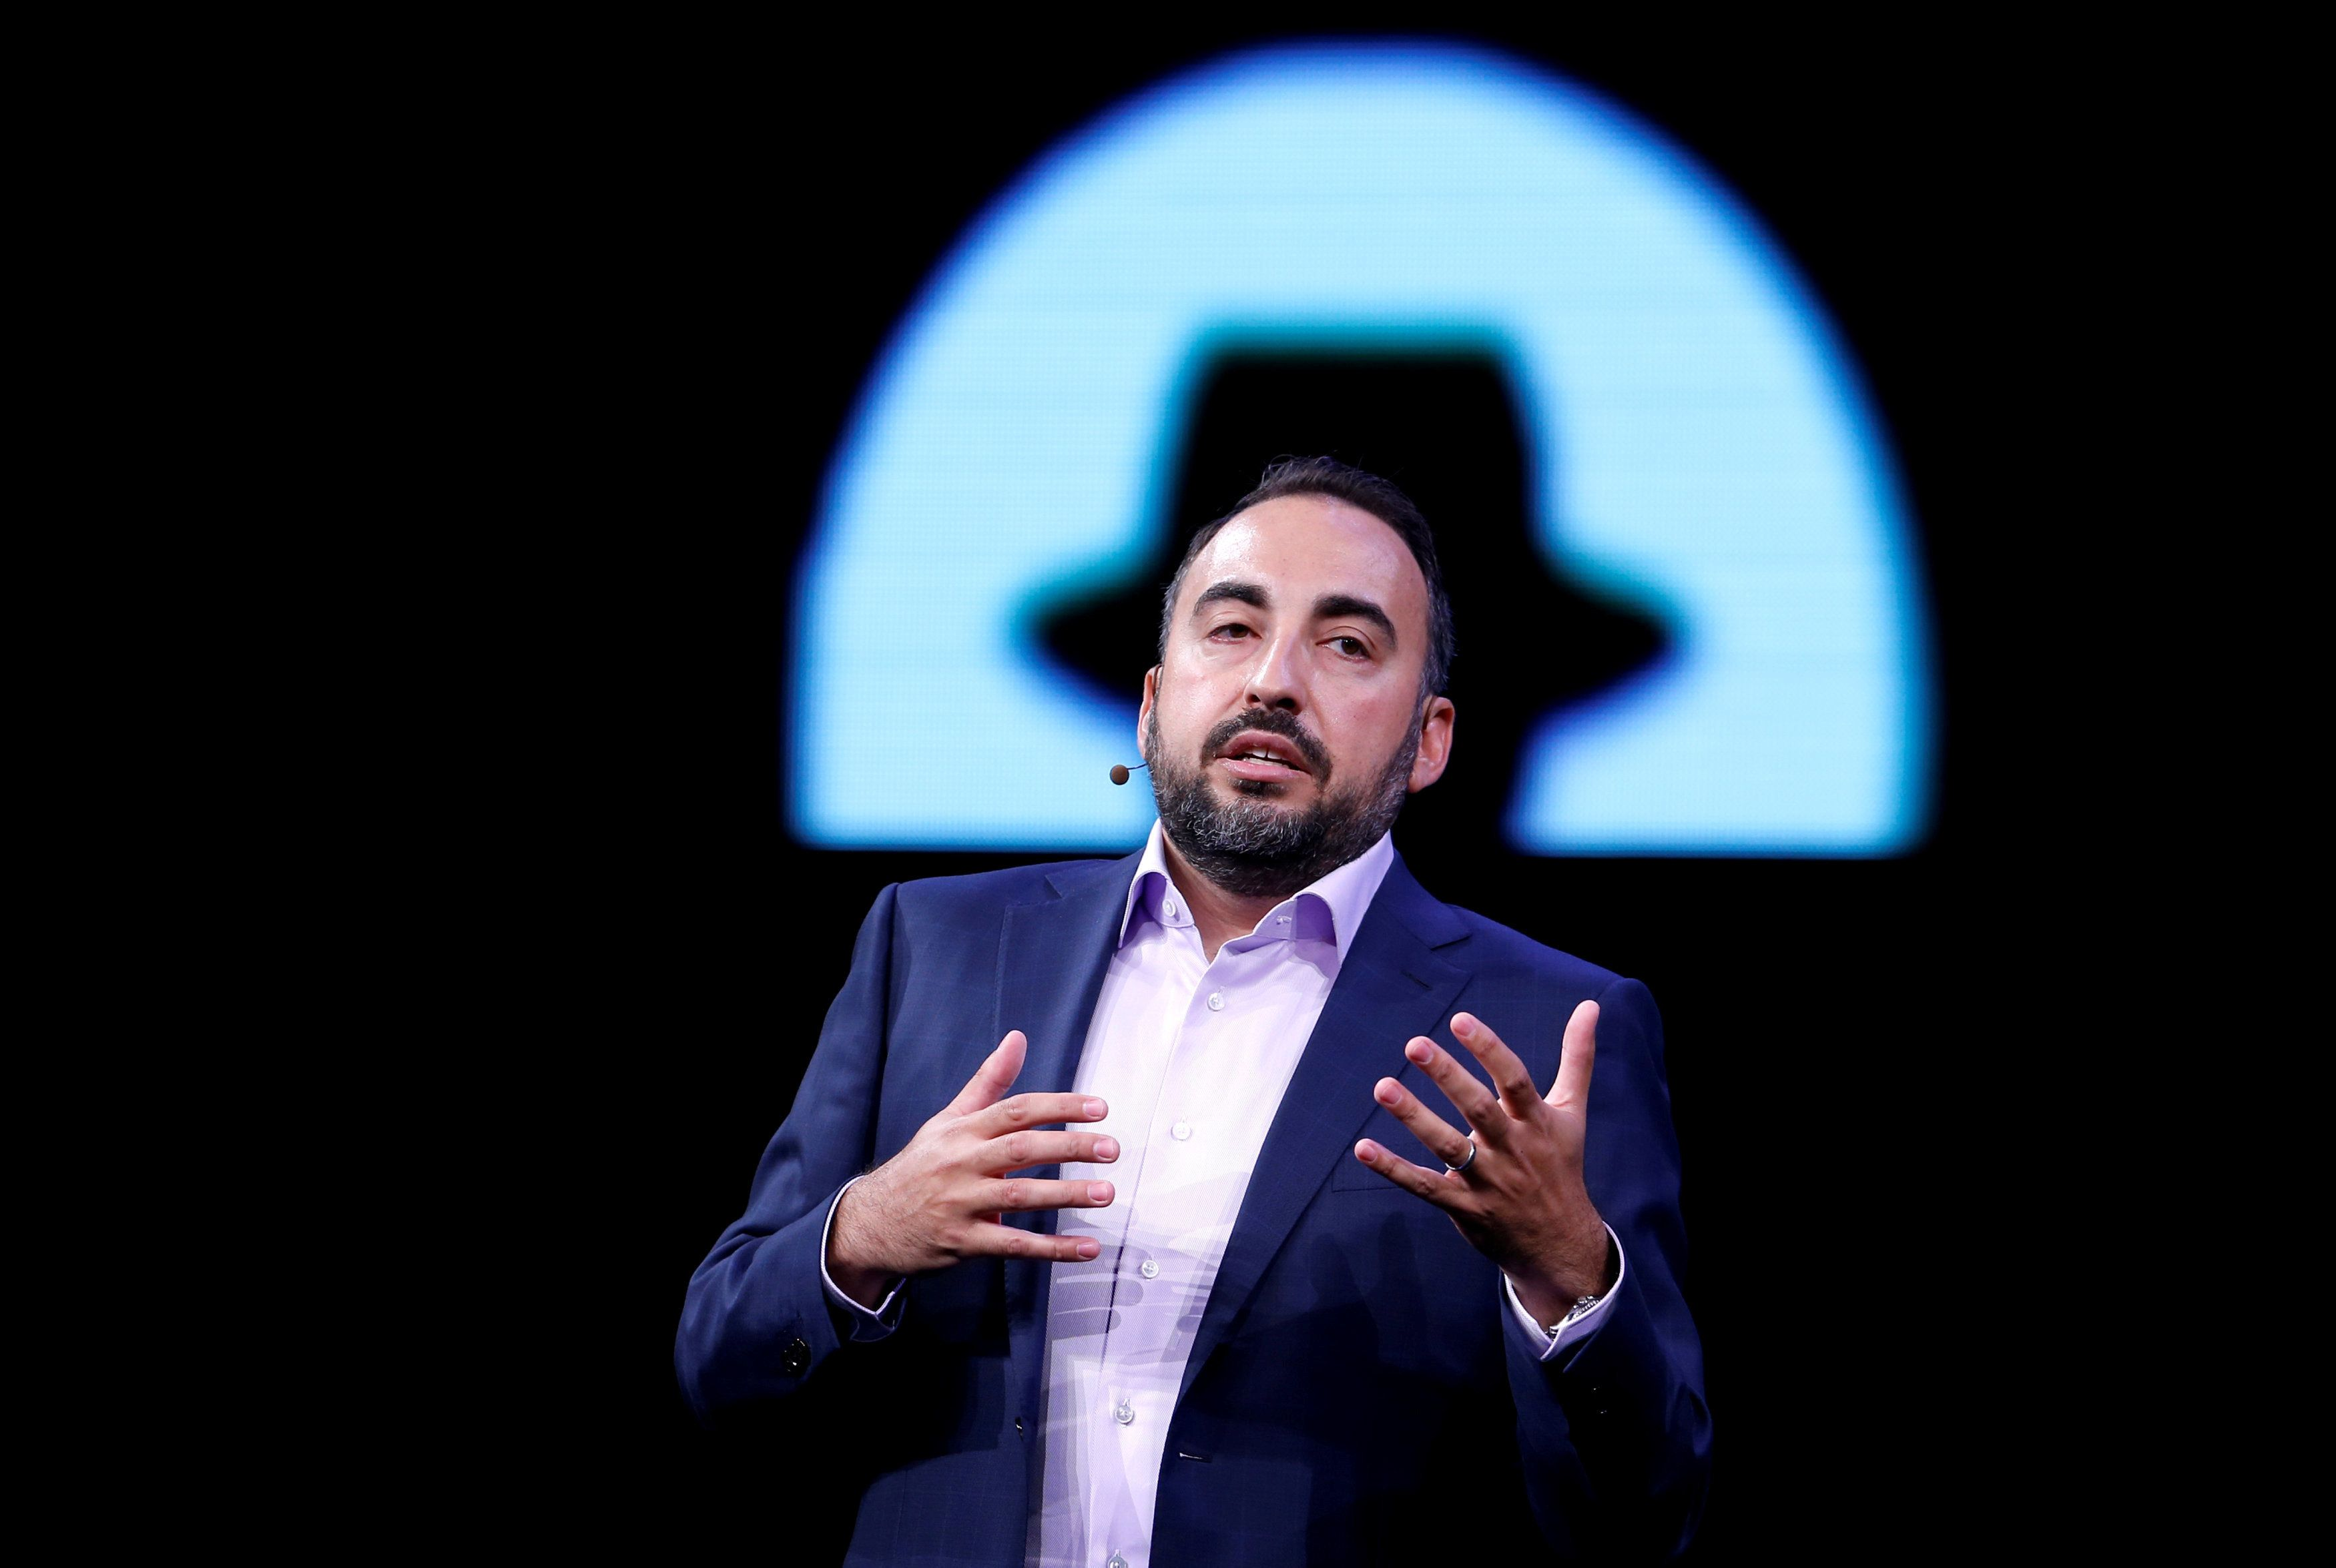 Facebook Chief Security Officer Alex Stamos gives a keynote address during the Black Hat information security conference in Las Vegas, Nevada, U.S. July 26, 2017. REUTERS/Steve Marcus     TPX IMAGES OF THE DAY